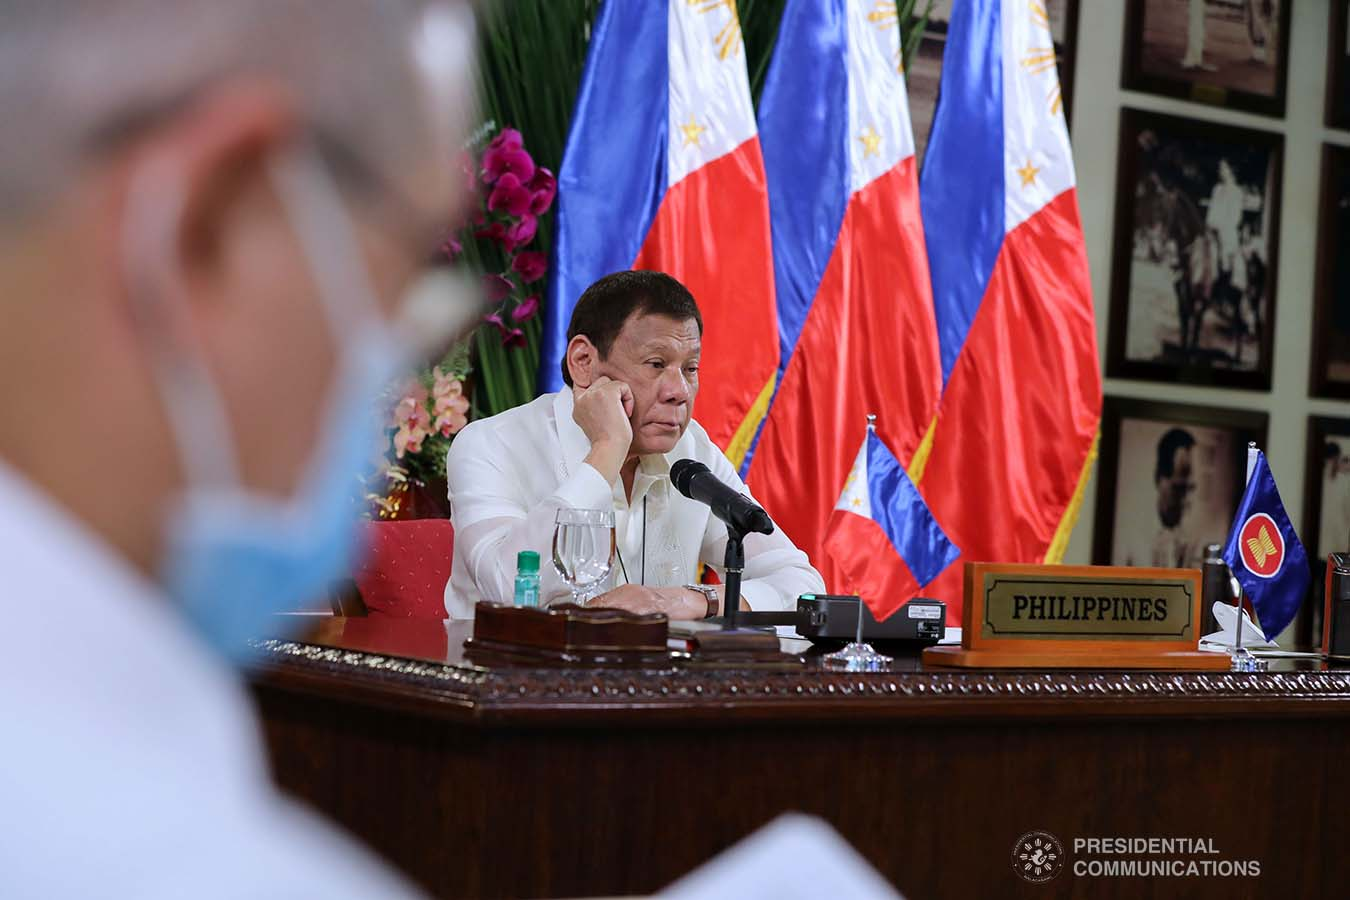 President Rodrigo Roa Duterte joins other leaders from the Association of Southeast Asian Nations (ASEAN) member countries during the 36th ASEAN Summit video conference at the Malago Clubhouse in Malacañang on June 26, 2020. ROBINSON NIÑAL JR./PRESIDENTIAL PHOTOS